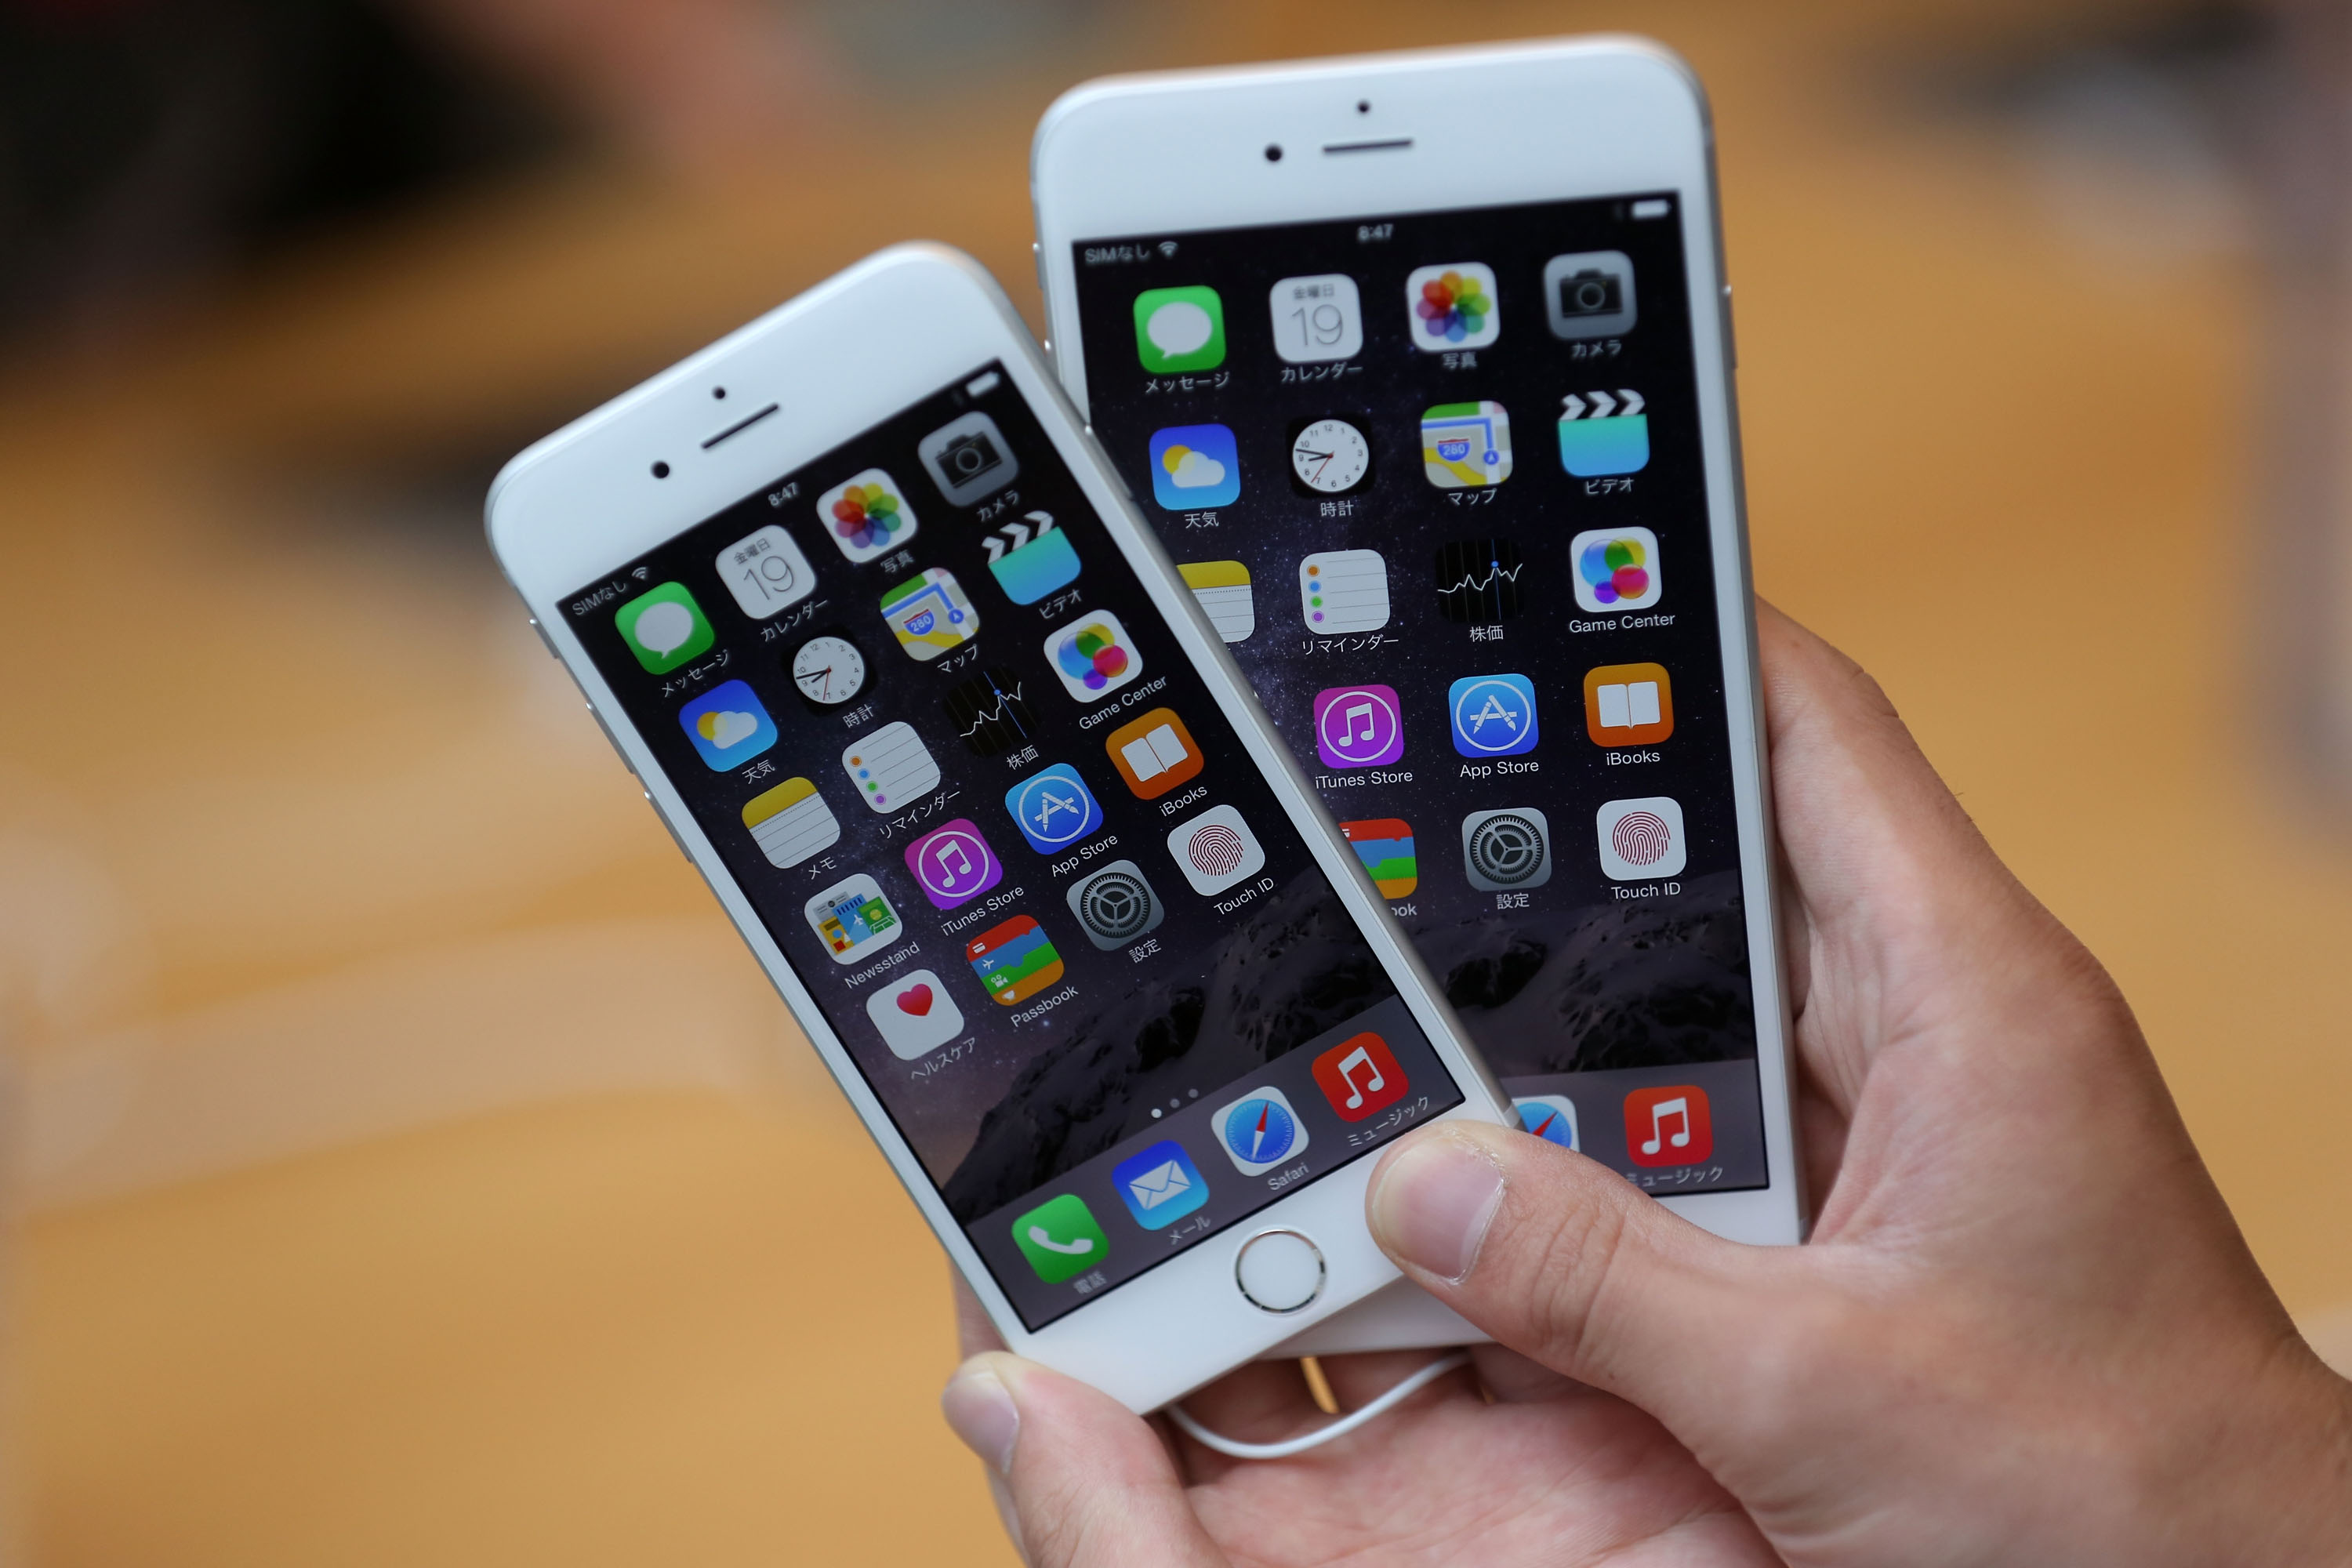 "<p>It took Apple three years to respond to the trend of larger smartphones, but once it did, the iPhone 6 and 6 Plus became huge hits.</p><p>With sales starting in September, Apple reported its biggest iPhone launch ever, with buyers snapping up the 4.7-inch-display iPhone 6 and 5.5-inch iPhone 6 Plus as fast as Apple could make them. In the latest quarter, Apple sold 39.3 million iPhones, up 16 percent from the year earlier and easily topping analysts' predictions, thanks to a record-setting <a href=""http://www.cnet.com/news/apple-sells-10m-iphone-6-6-plus-devices-in-first-weekend/"">10 million iPhone purchases</a> in the first weekend of sales.</p><p>""Demand for the new iPhones has been staggering,"" CEO Tim Cook said during an October conference call with analysts.</p><p>The iPhone is the linchpin of Apple's lineup, accounting for more than half of sales and about 70 percent of profit, according to analysts. Apple hopes to use the new phones to steal customers from rivals Samsung Electronics and HTC, which have been coming out with big-screen phones for years. </p><p>The new iPhones are a big jump over the 4-inch screen found in last year's iPhone 5S and 5C. In addition to being slimmer and lighter, both models also include a 64-bit A8 processor with improved graphics, an improved 8-megapixel rear camera, better battery life and an NFC chip that allows you to <a href=""http://www.cnet.com/news/apple-adds-nfc-to-iphone-6-with-apple-pay/"">use the phone to make payments</a>.</p><p><br>While the new iPhones have garnered positive reviews, Apple faced a hiccup from reports that the devices could actually bend in a user's pocket. Amid the mini-tempest, Apple disclosed that <a href=""http://www.cnet.com/news/apple-says-only-9-customers-have-complained-about-bendgate/"">only nine customers</a> contacted the company about bent phones, saying the problem was ""extremely rare.""</p>"